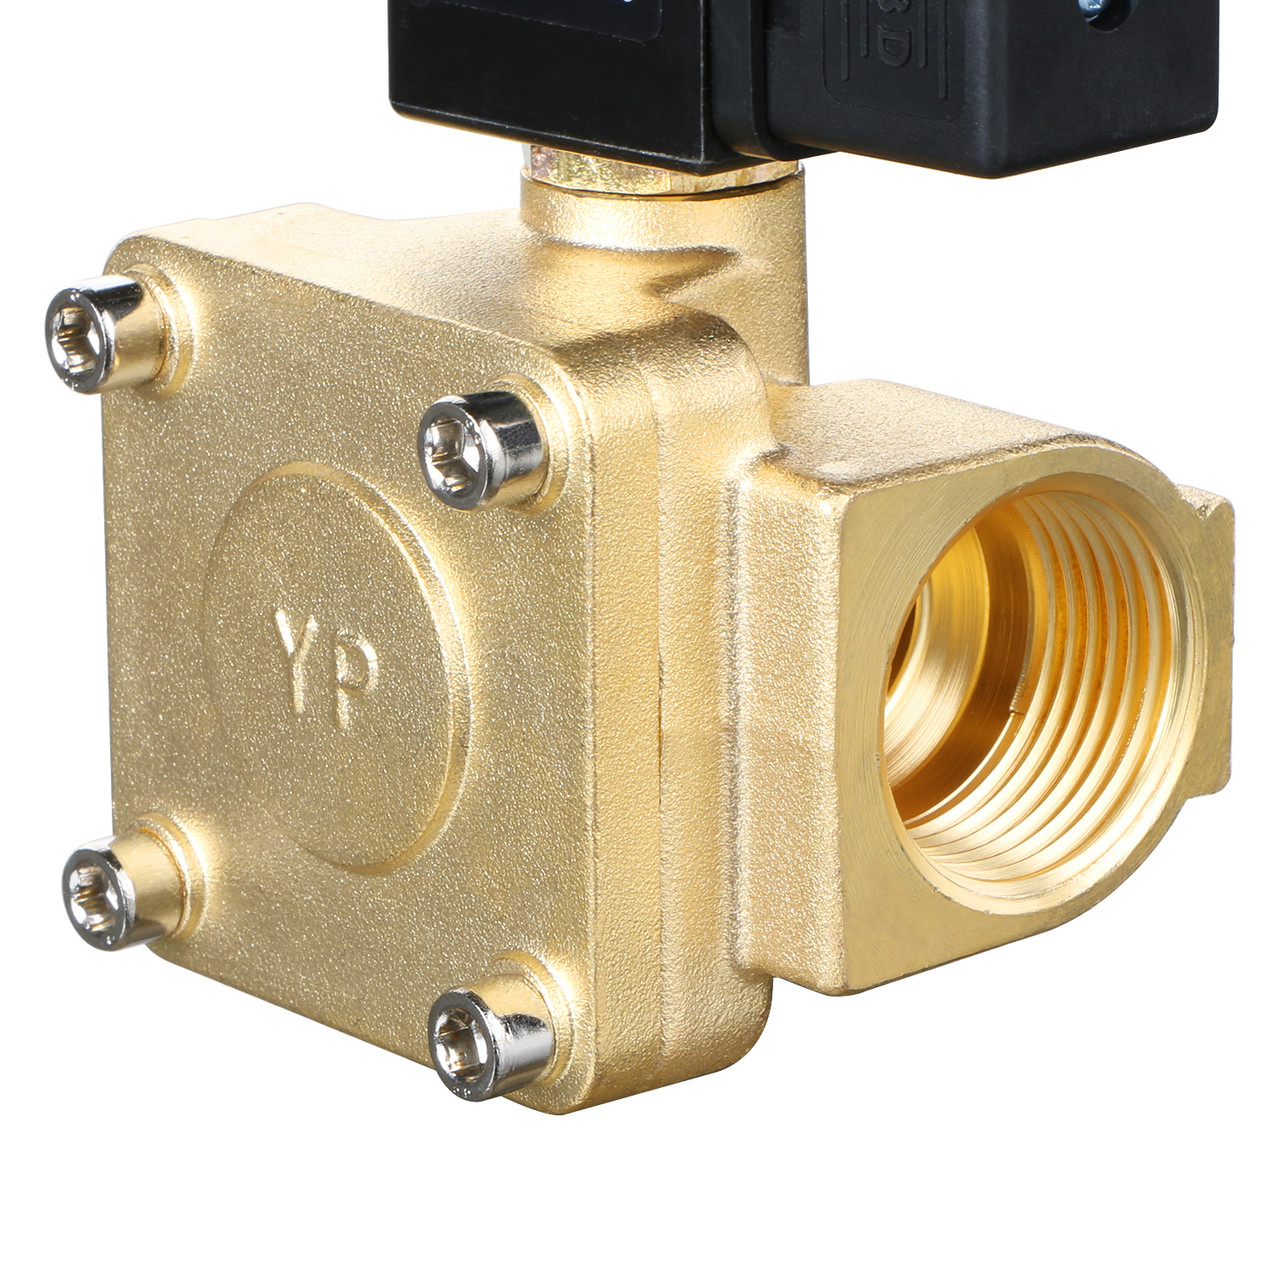 "USSOLID Electric Solenoid Valve- 1"" 110V AC 230PSI Solenoid Valve Brass Body Normally Closed, VITON SEAL"